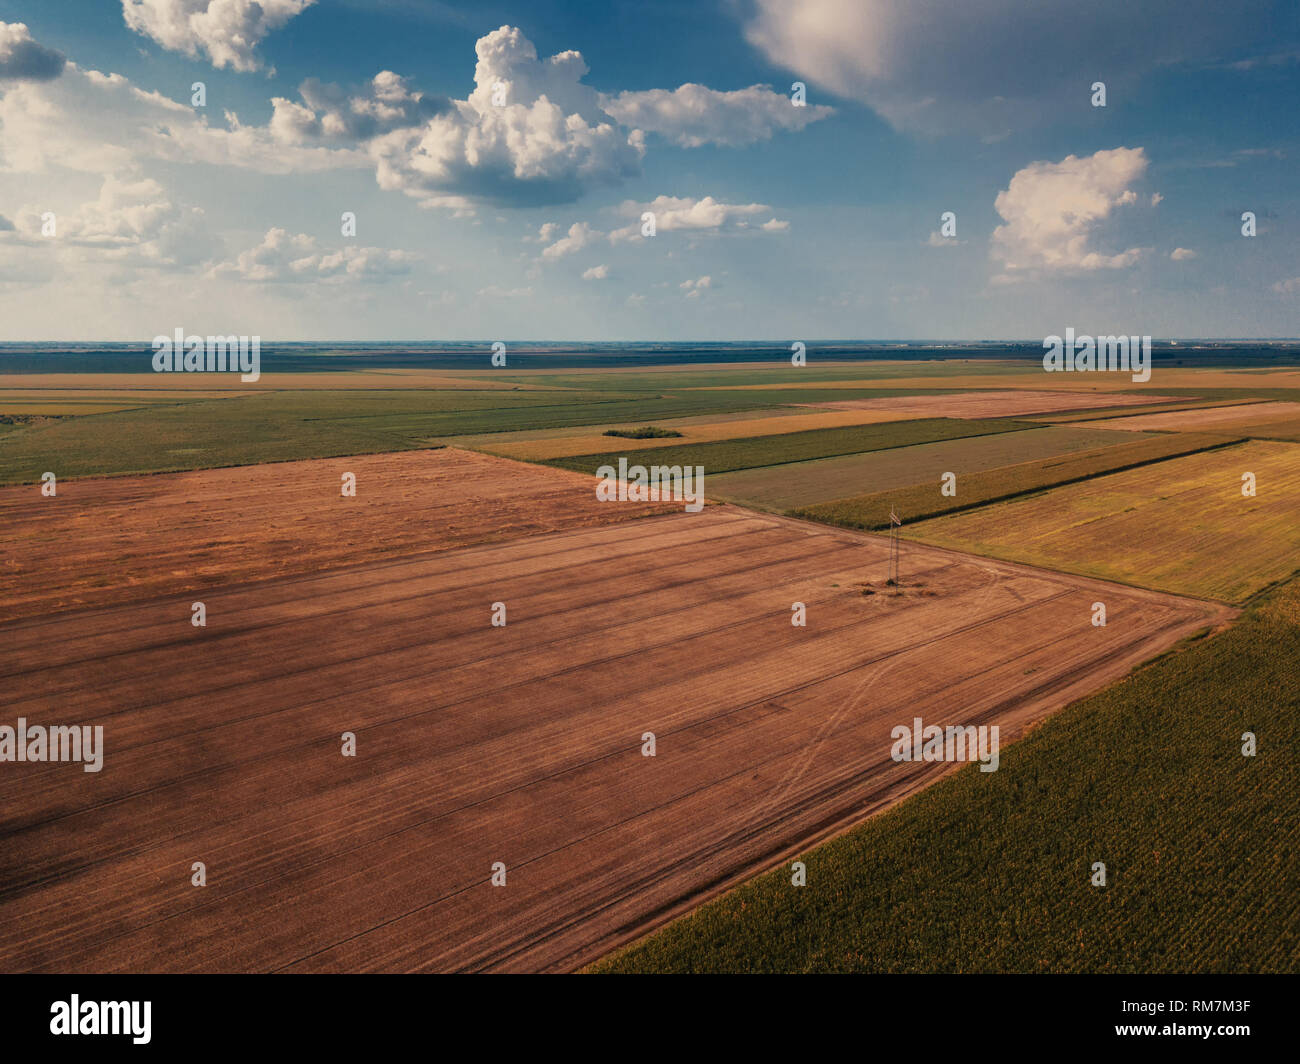 Drone photography of cultivated fields in summer, plain countryside landscape from high angle view - Stock Image